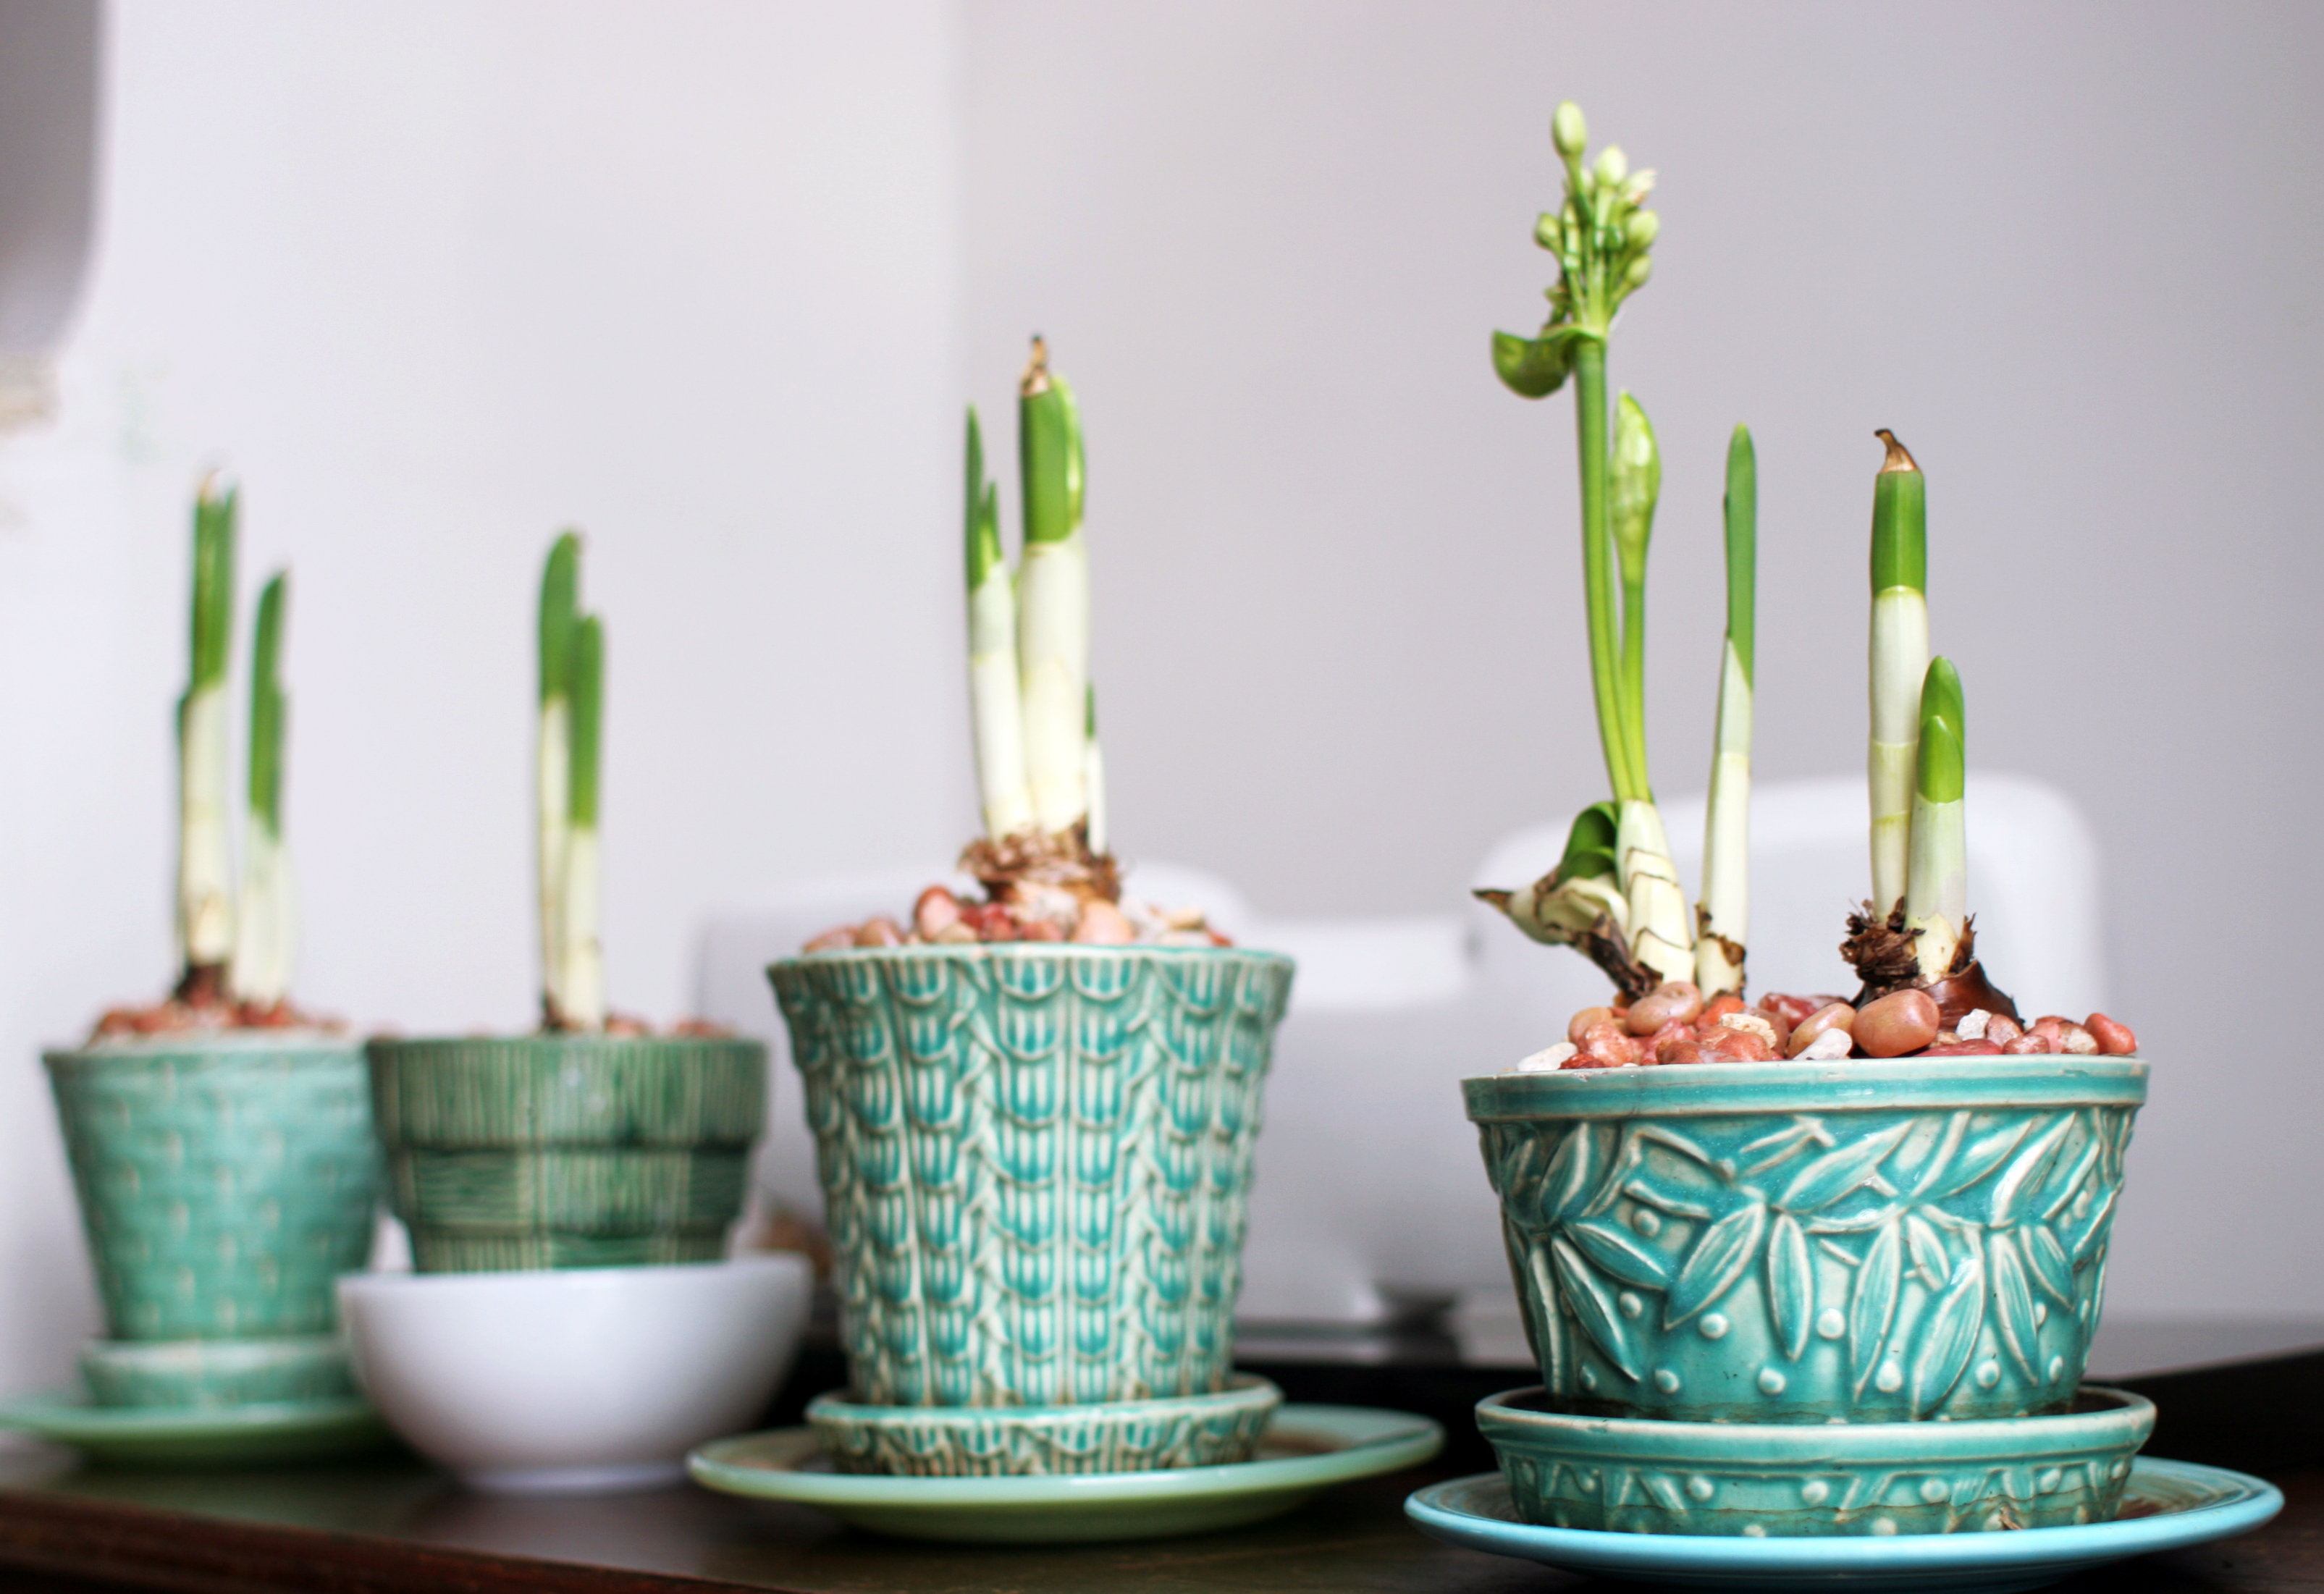 flea market finds: vintage flower pots | domesticspace